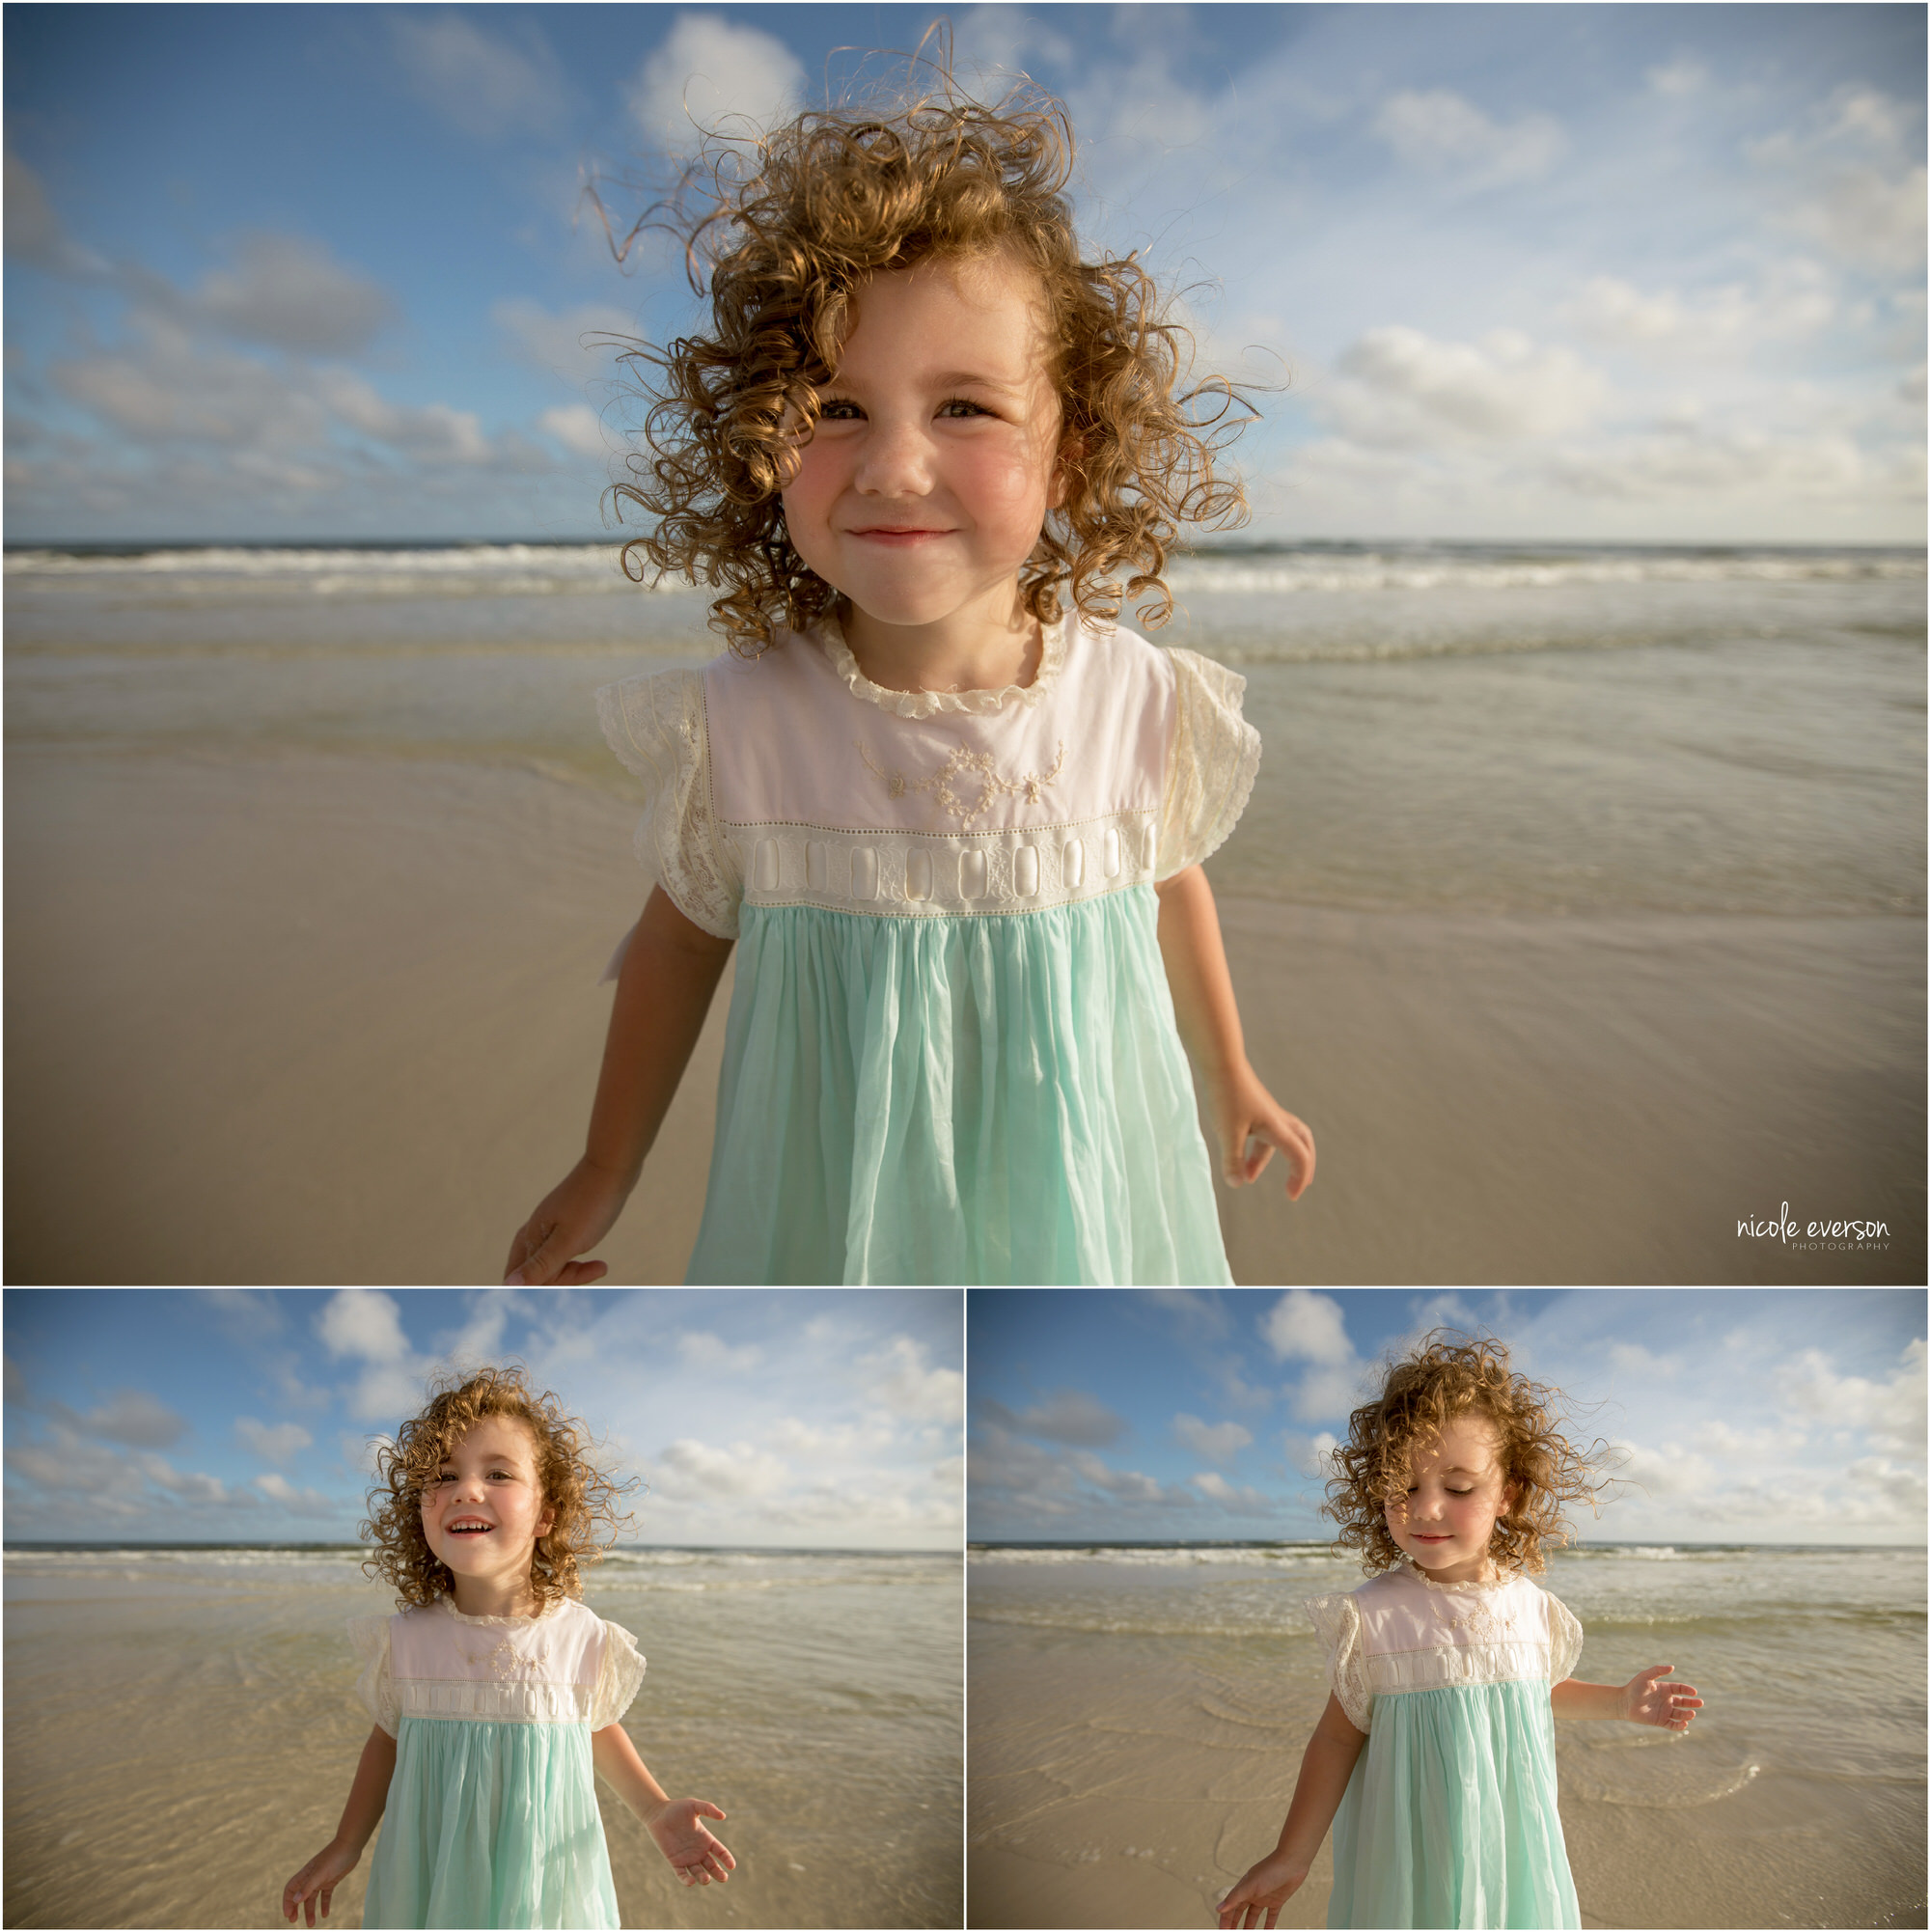 Curly haired little girl in white and blue dress on the beach. Photographed by Nicole Everson Photography.